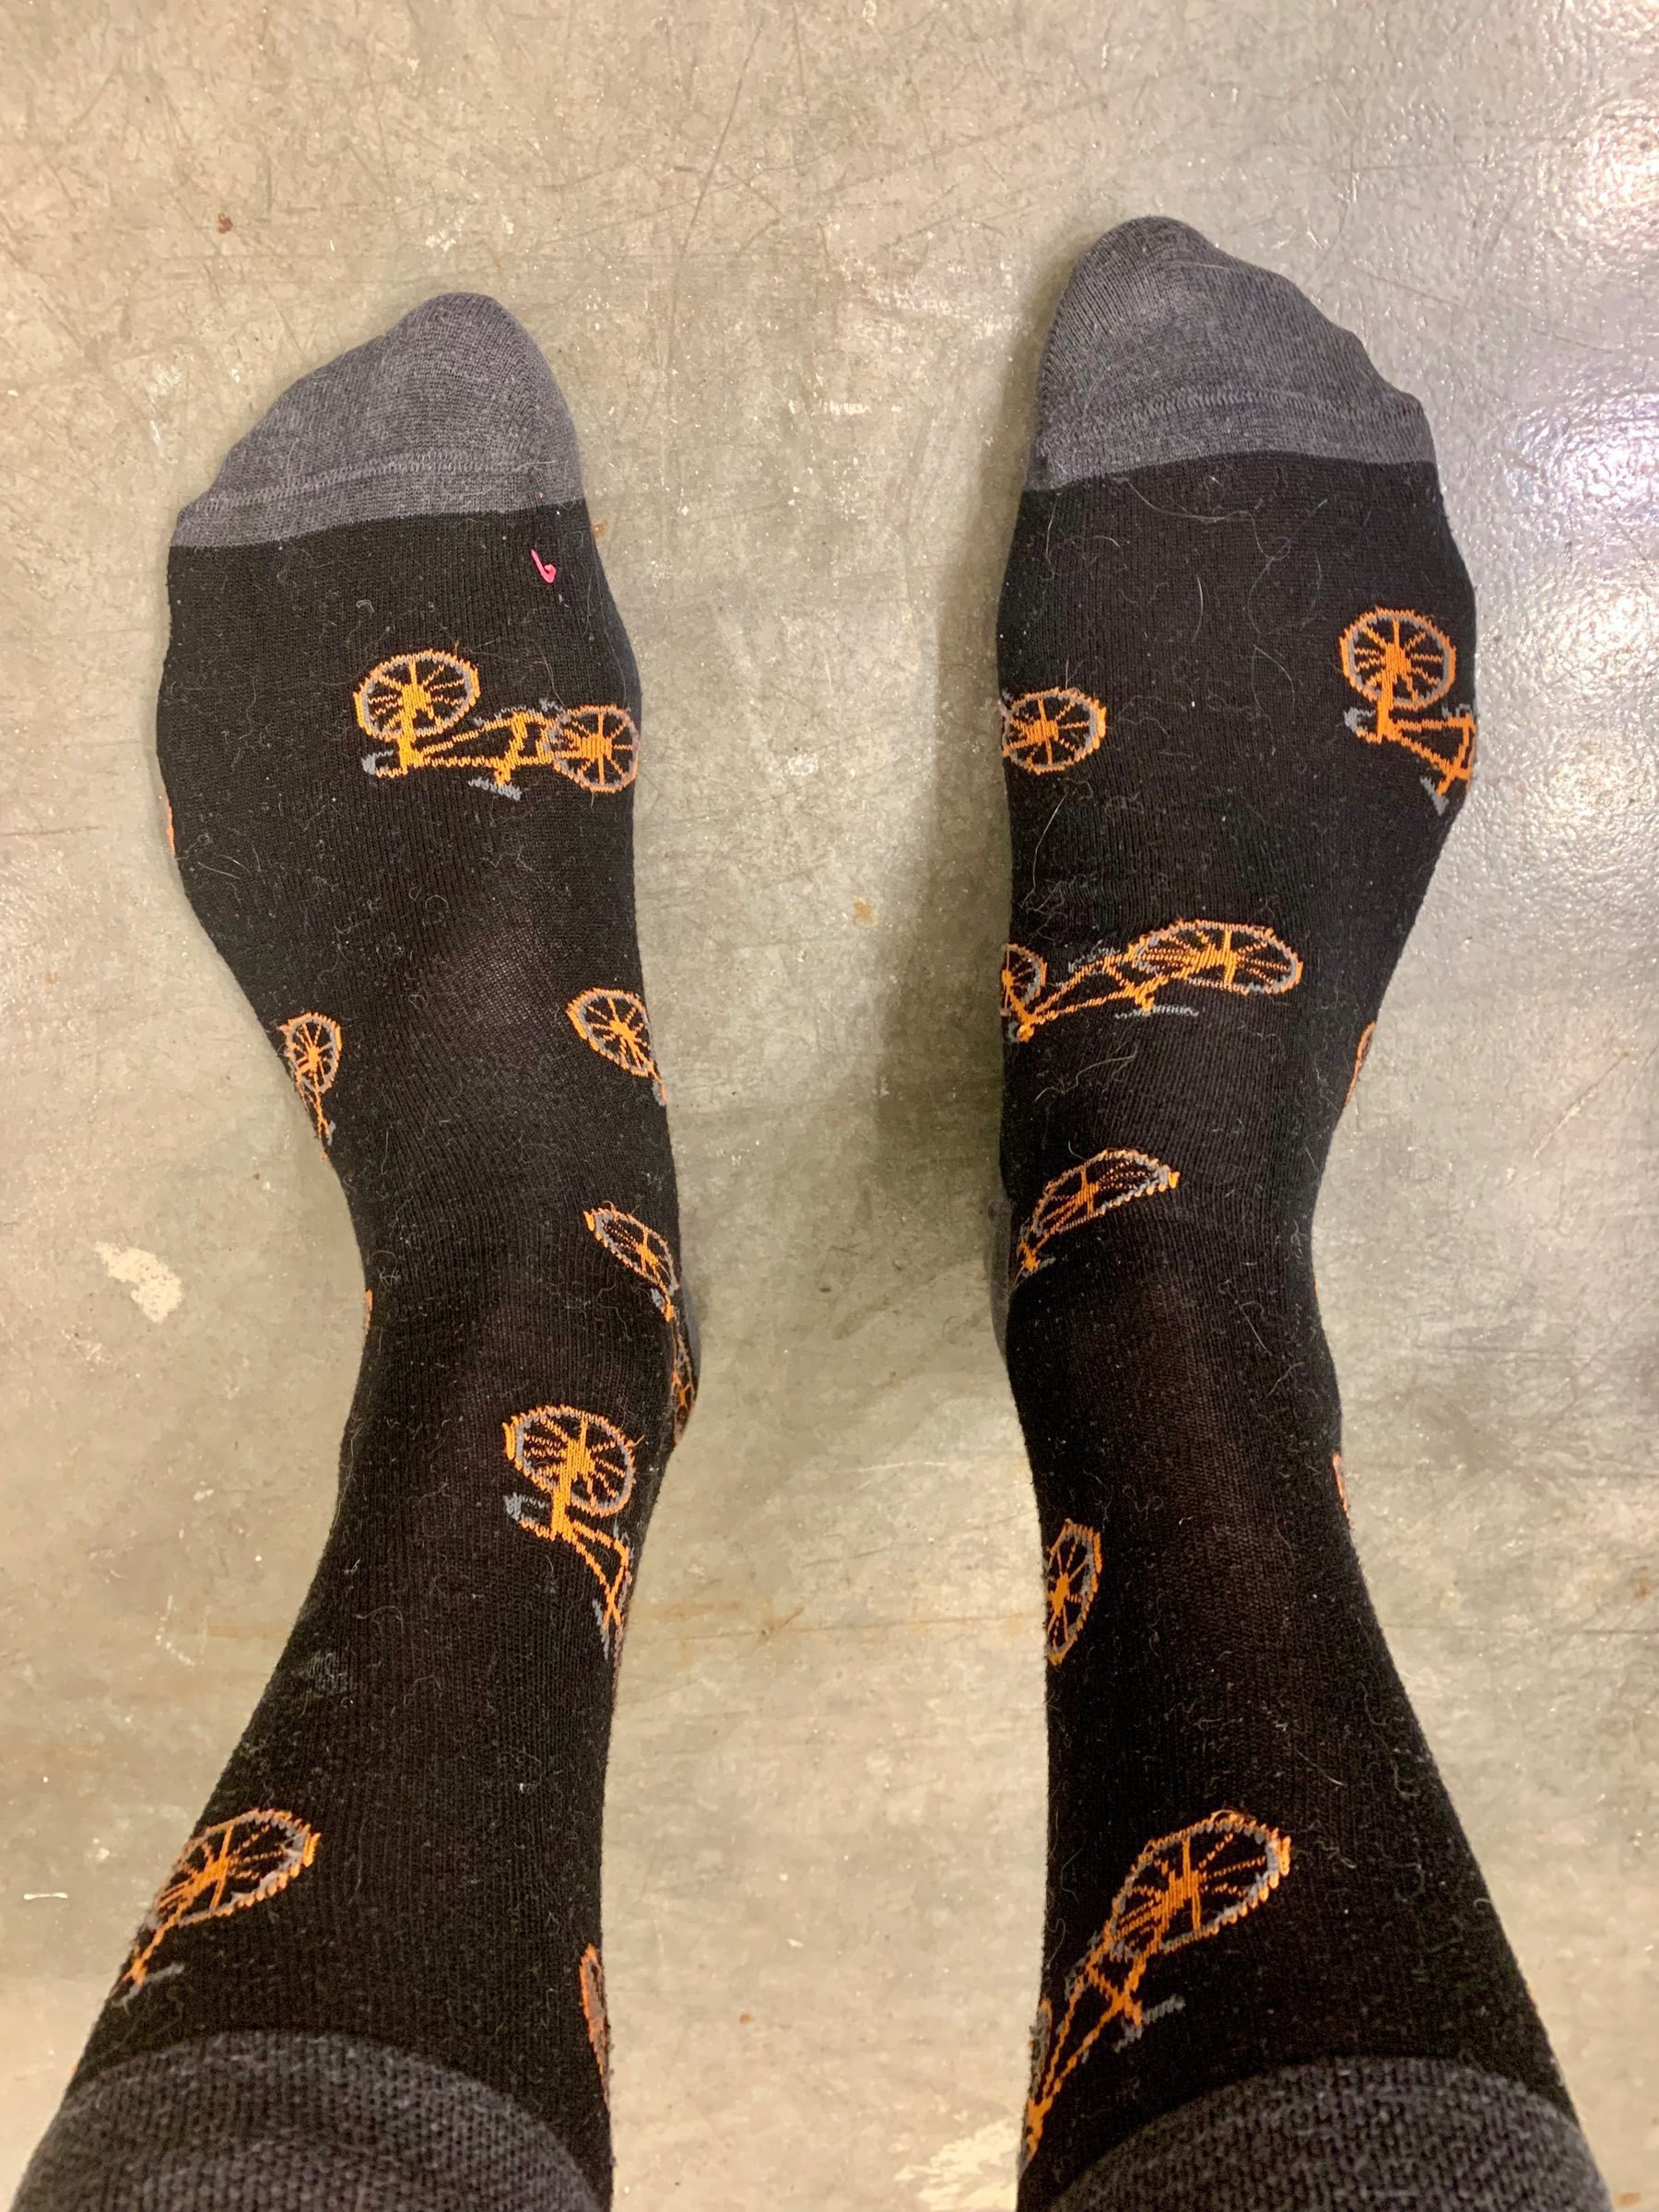 Dress socks with bicycles on them